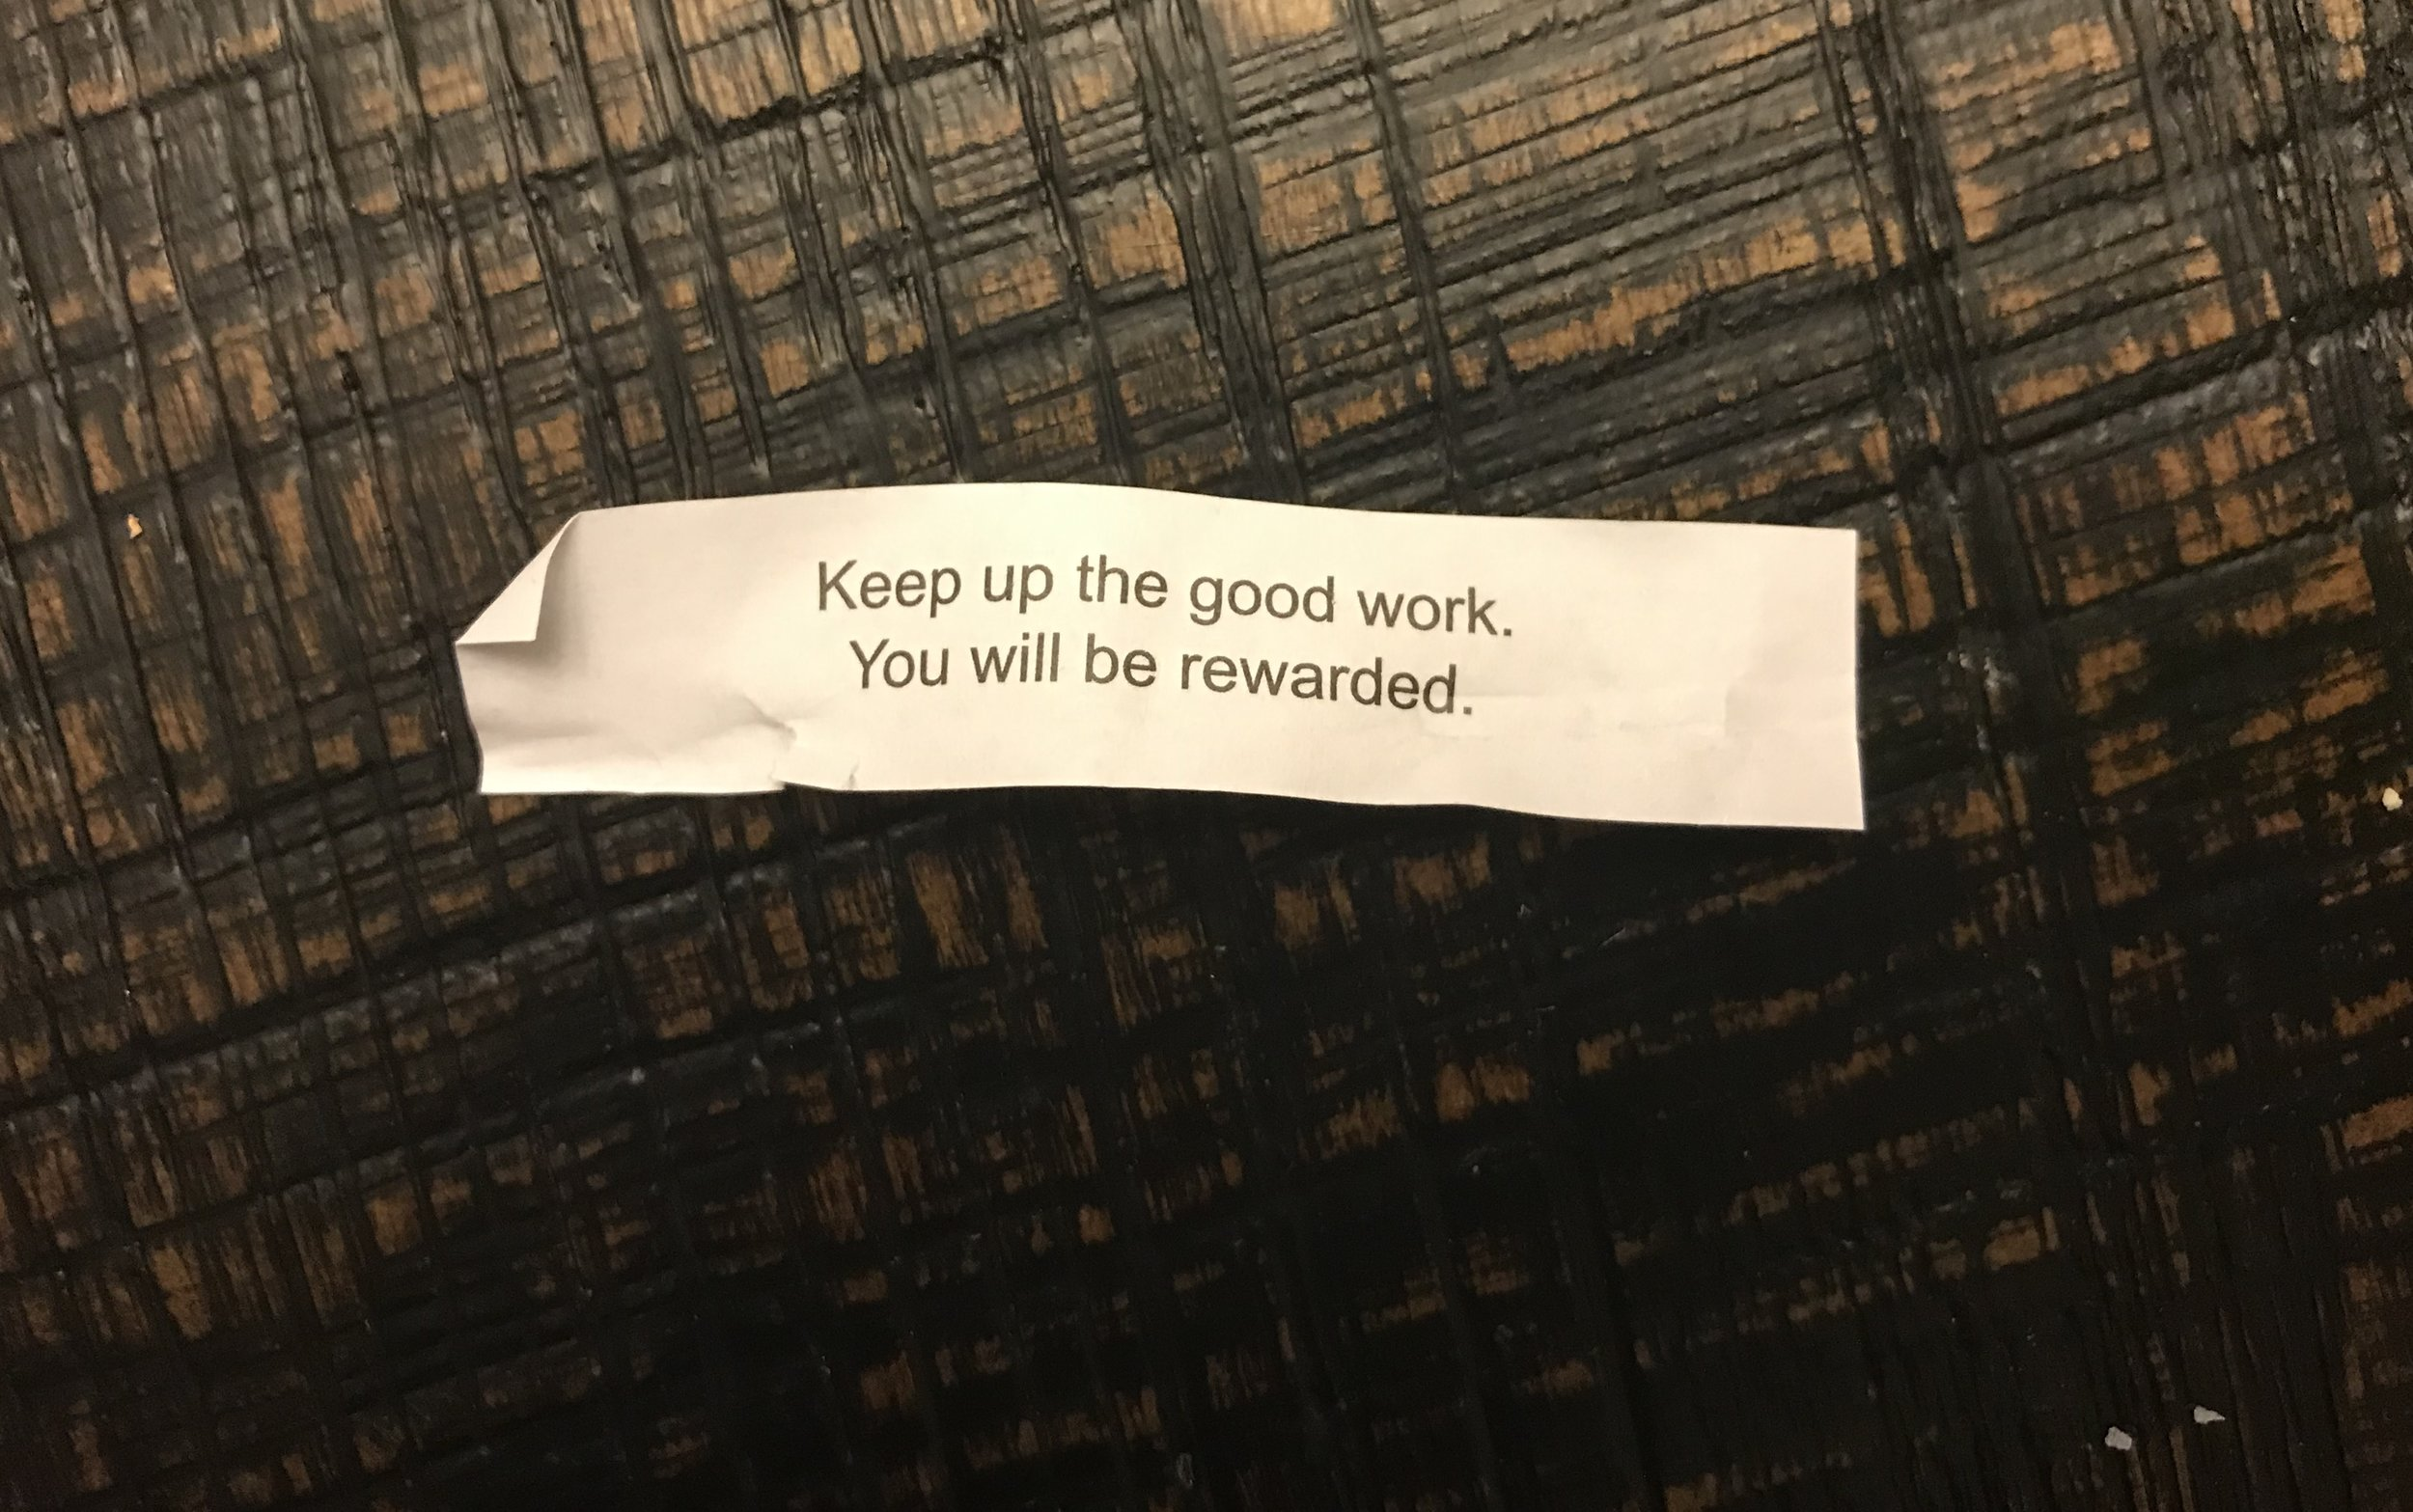 I guess I'll take that as a sign, fortune cookie. I'll keep on keeping on.